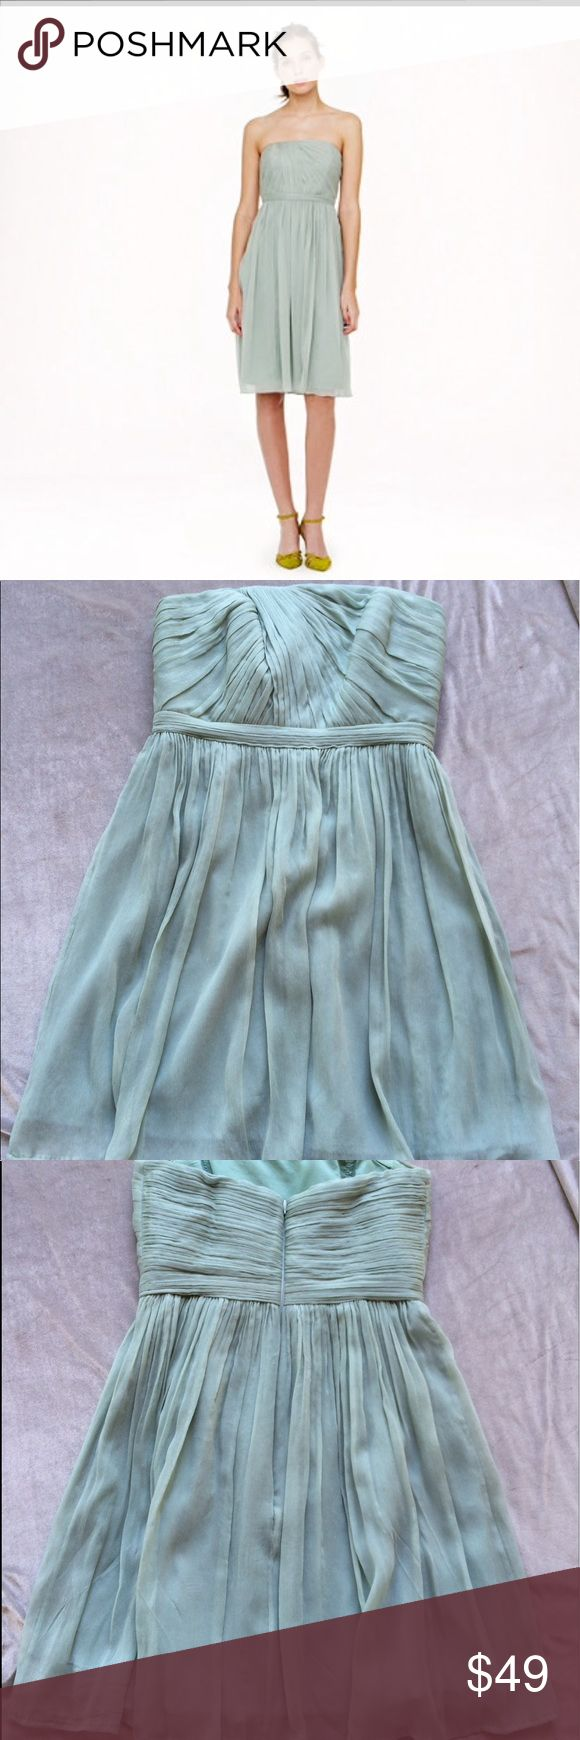 """J Crew sea foam green dress Perfect for a bridesmaid dress! Brand new condition. Size 4 petite. Measures 27"""" length and 13"""" across waist. J. Crew Dresses Strapless"""